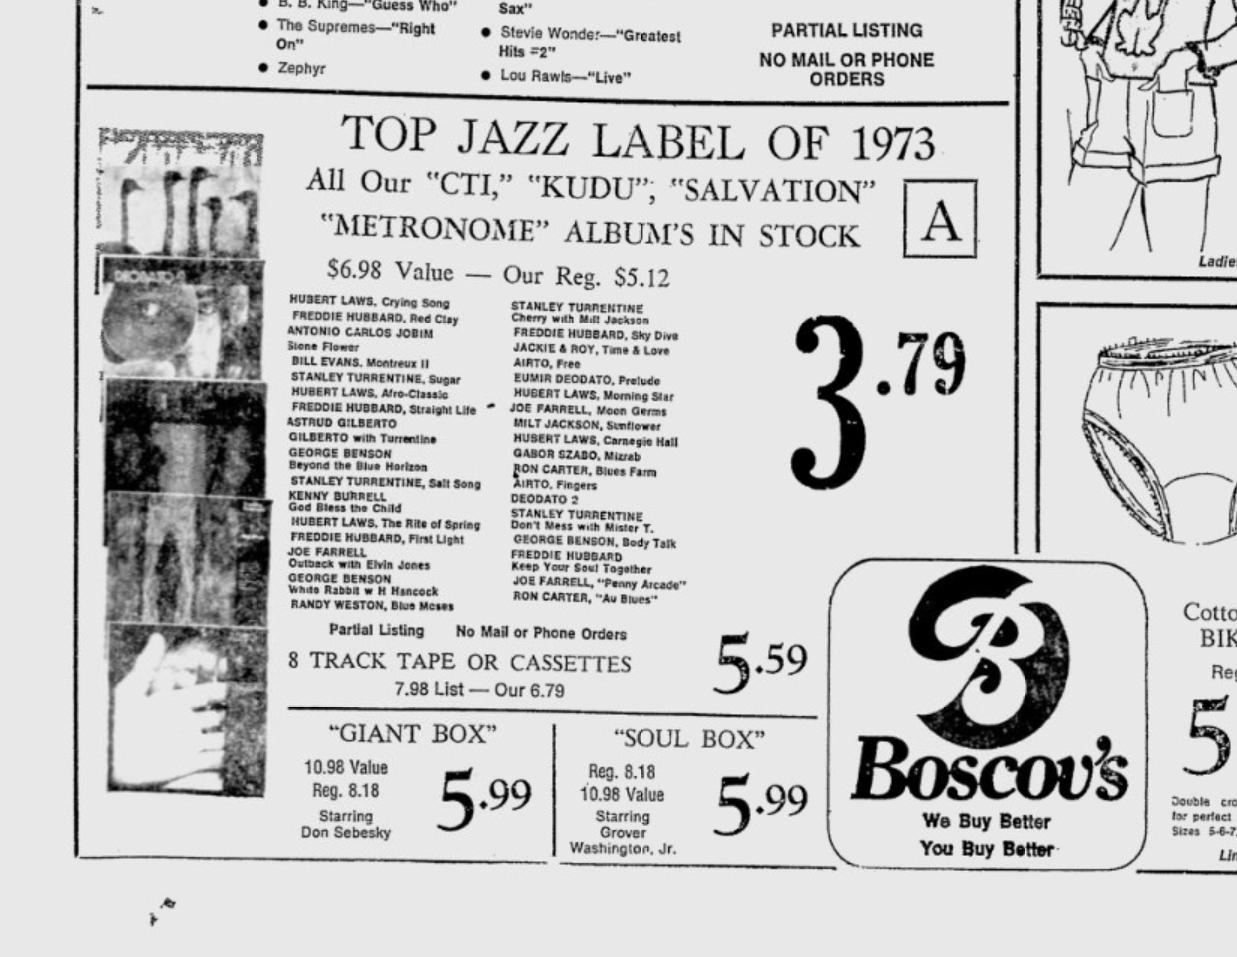 News paper advertisement for Boscovs